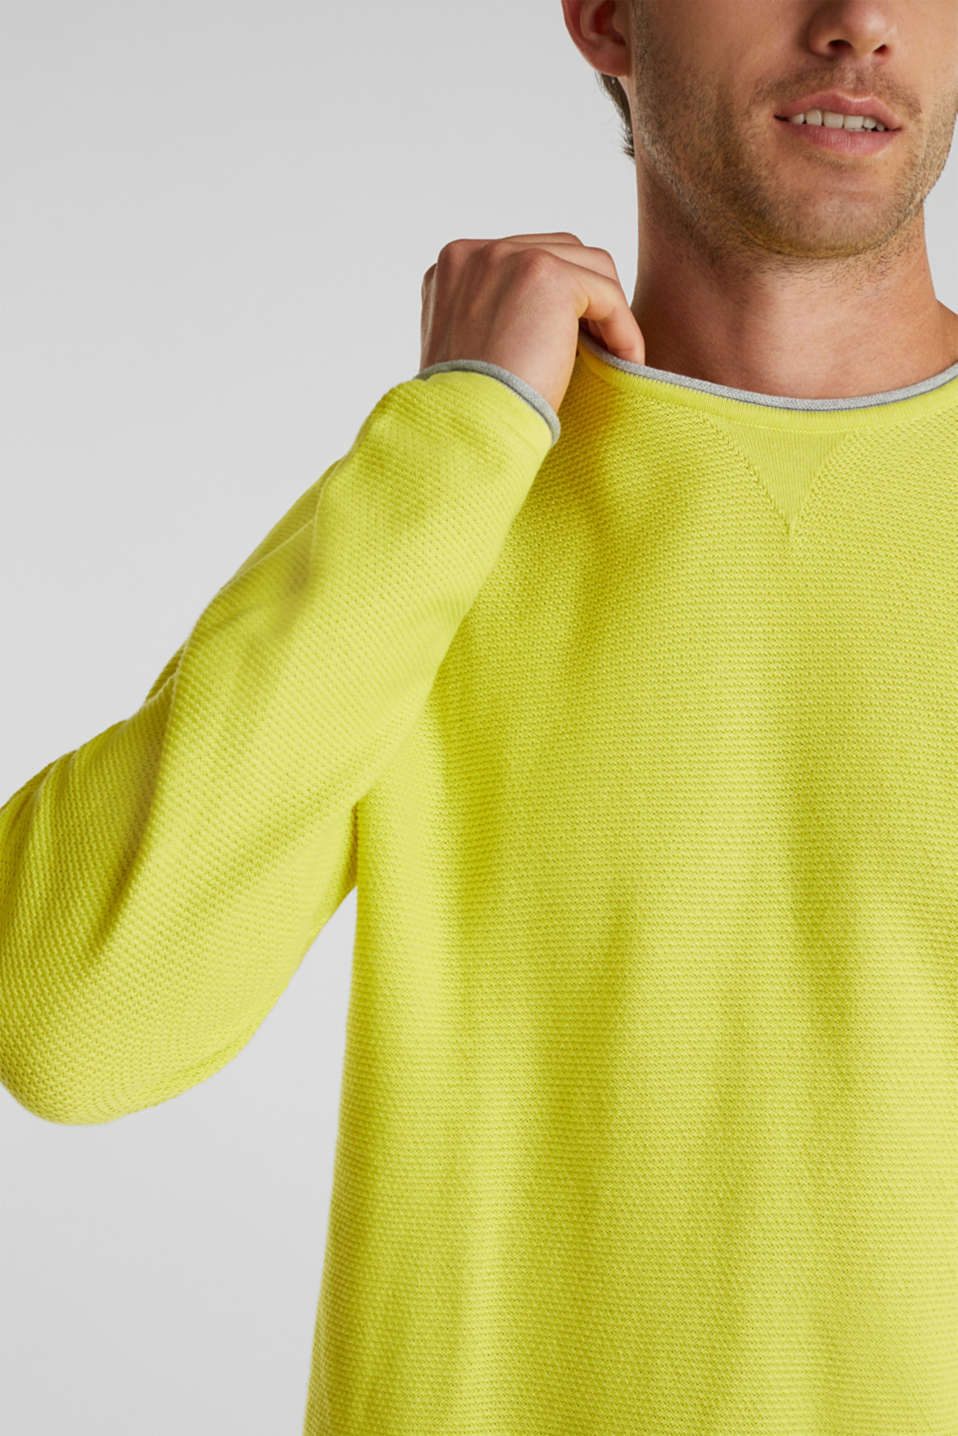 Textured jumper made of 100% cotton, BRIGHT YELLOW, detail image number 2